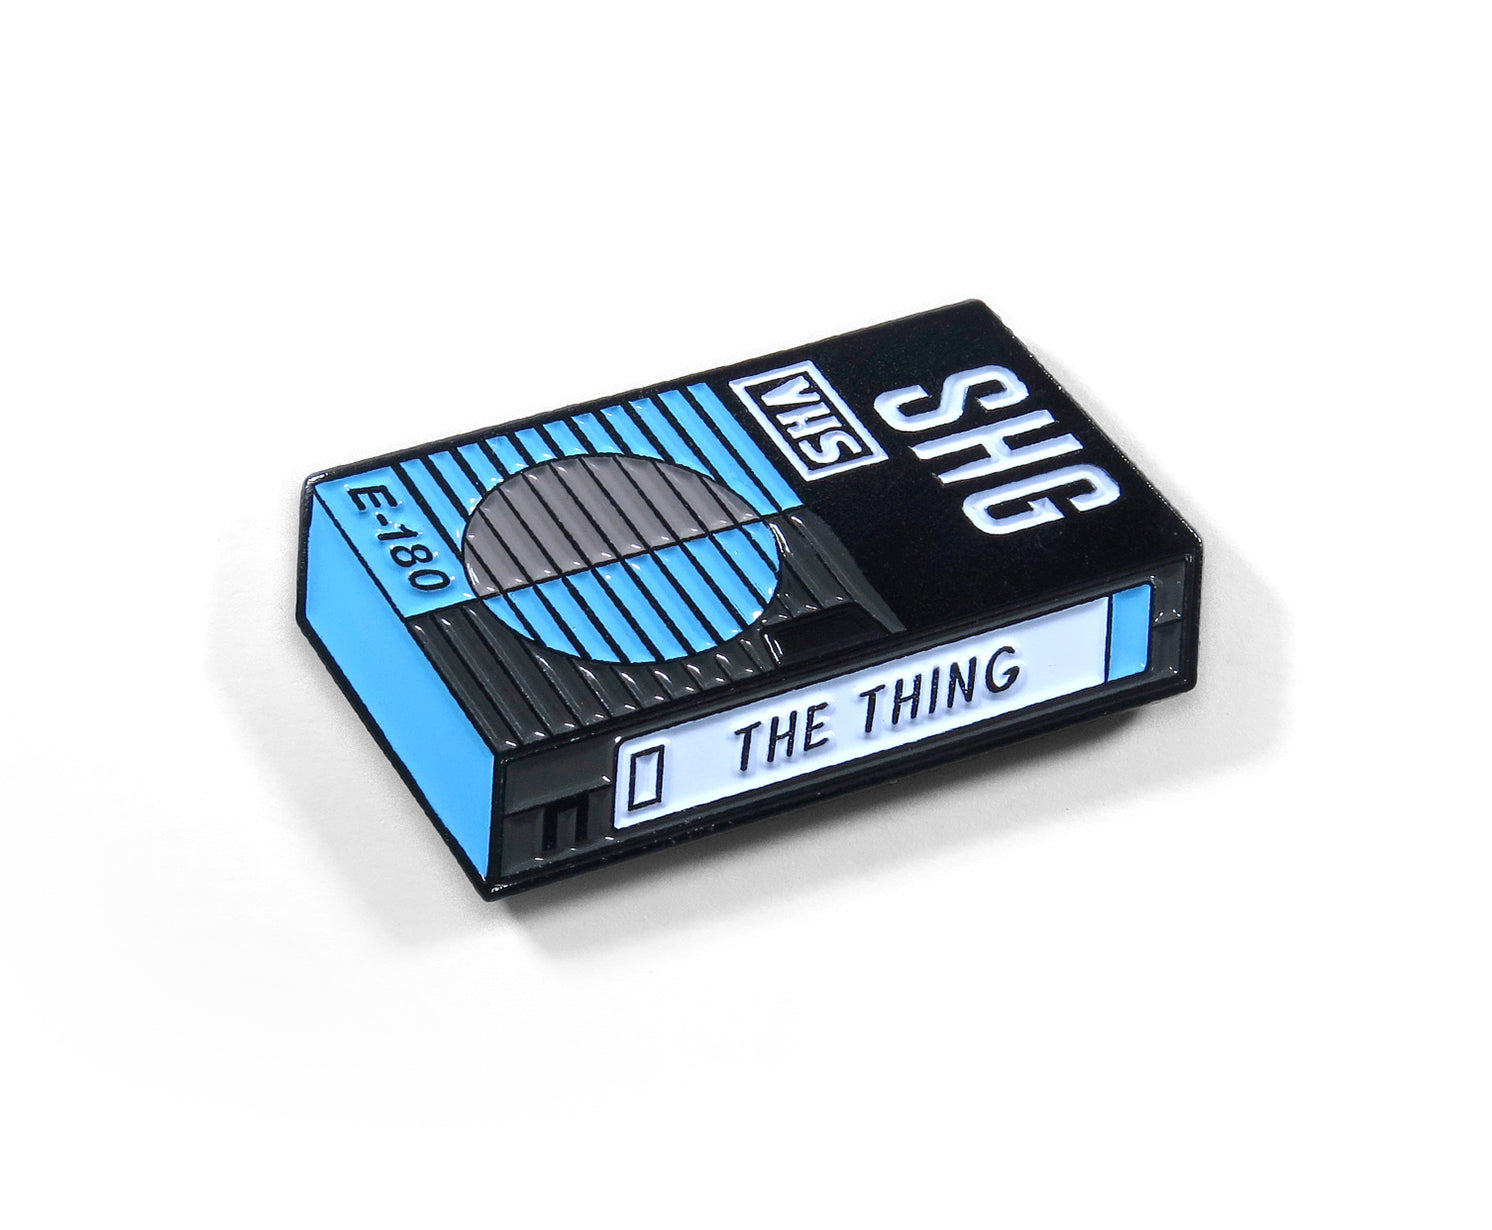 TV-REC Exclusive / The Thing